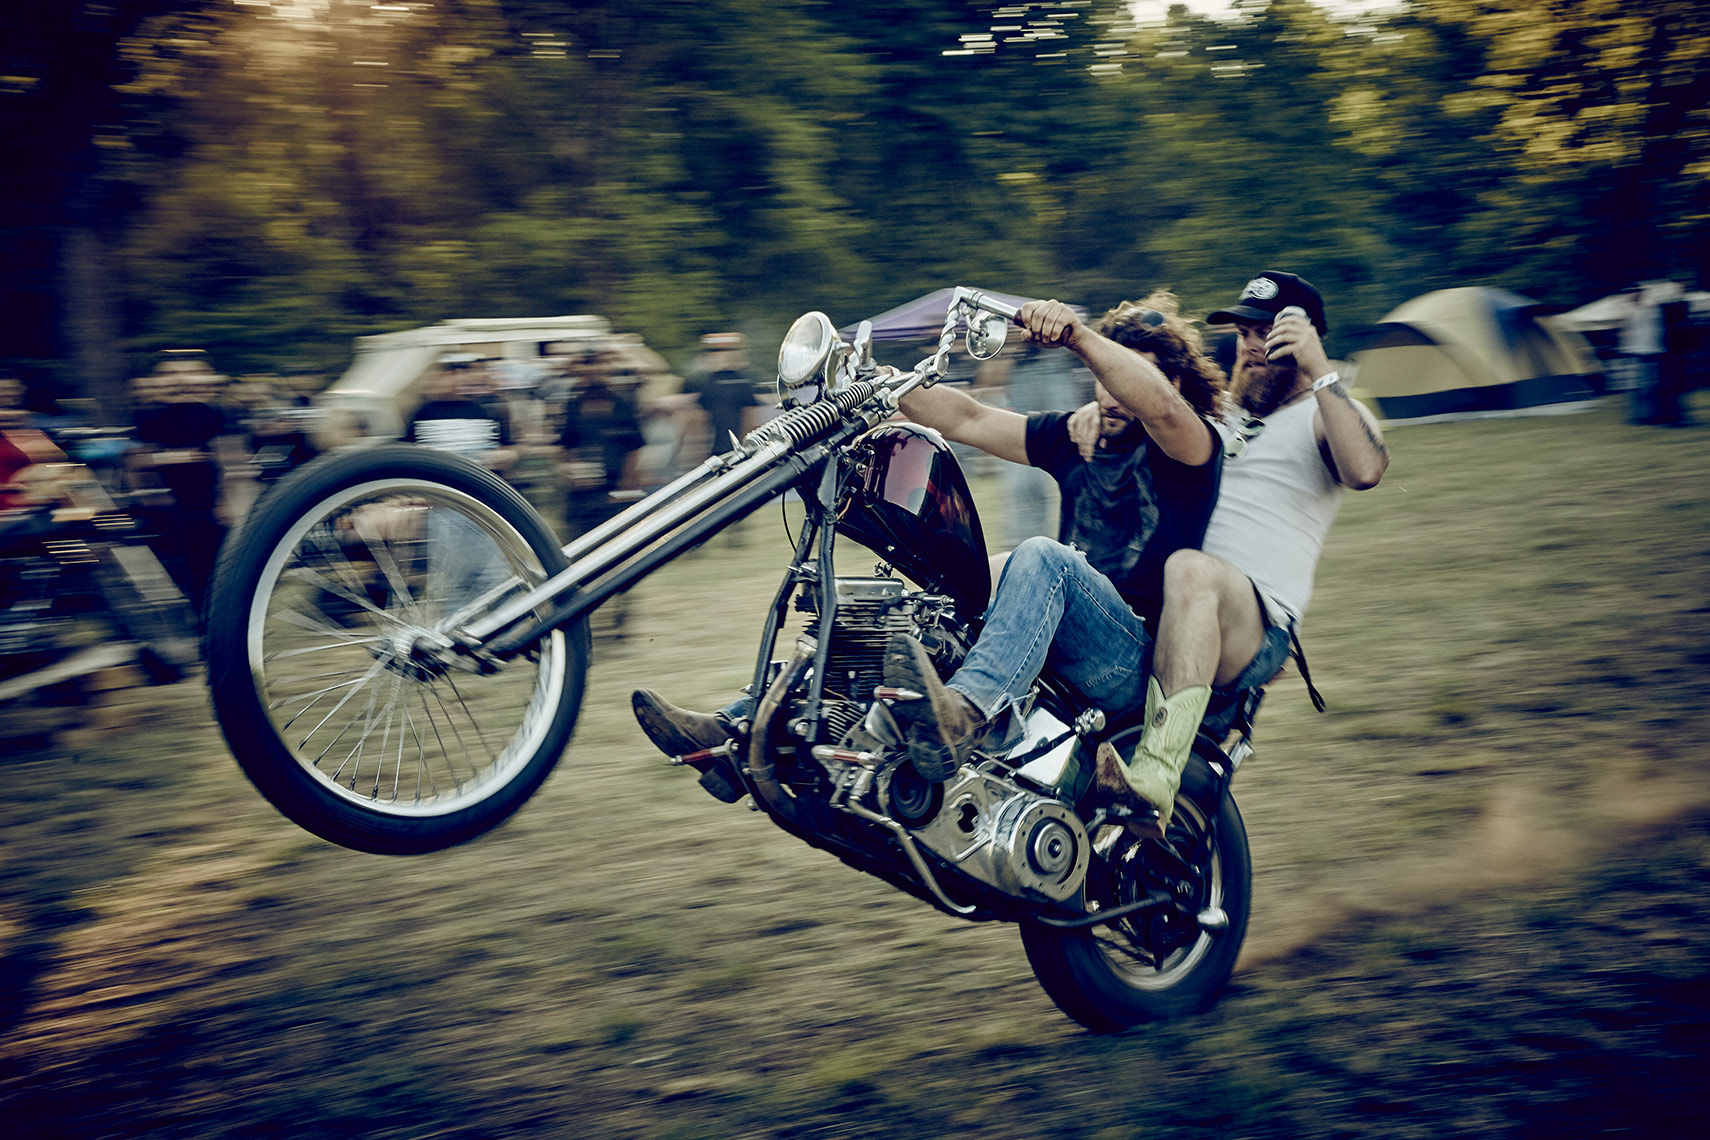 Wild Times at Smokey Mountain Chopper Fest